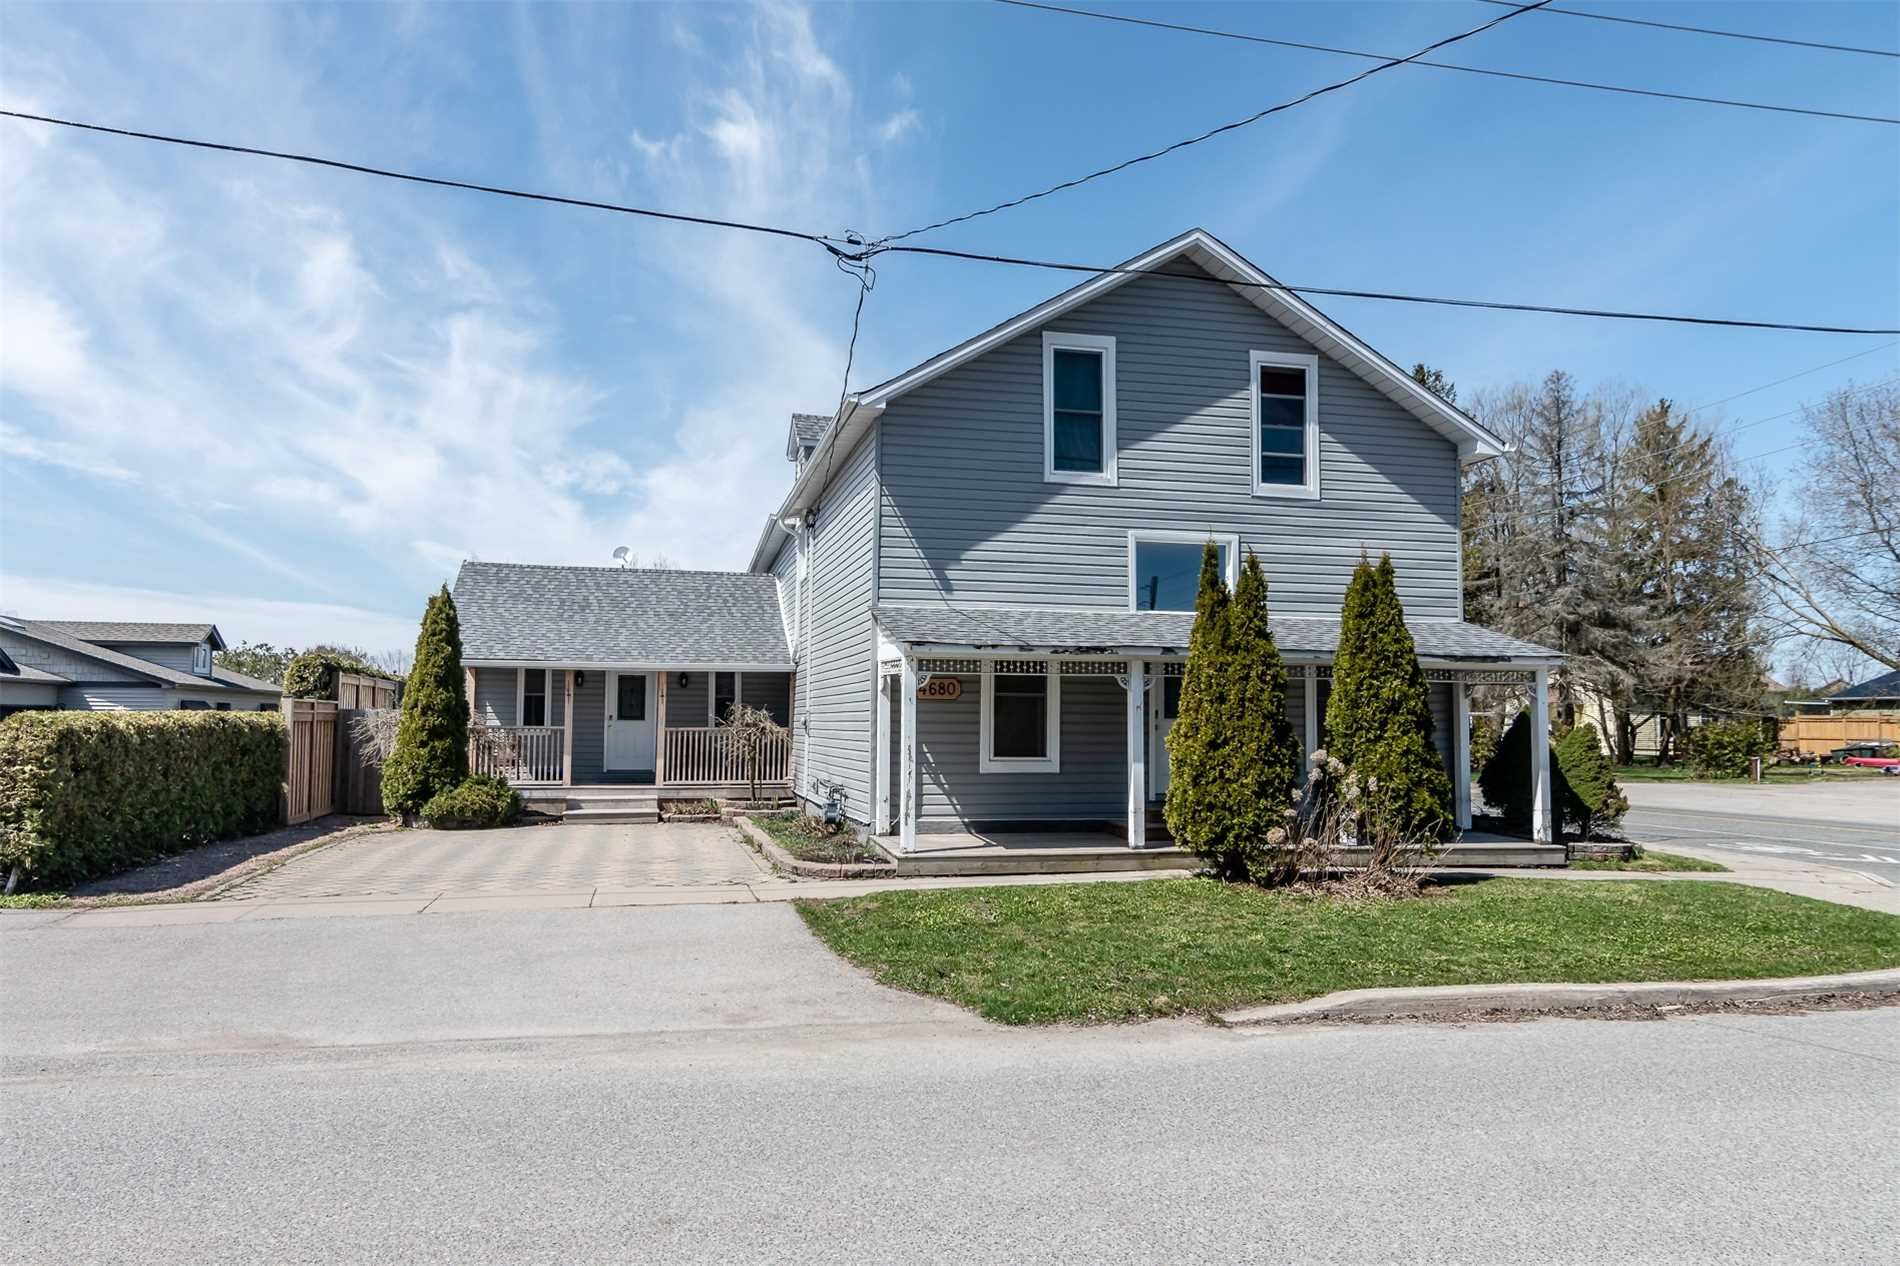 4680 Old Simcoe St, Oshawa, Ontario L1H 7K4, ,3 BathroomsBathrooms,Commercial/Retail,For Sale,Old Simcoe,E4860322